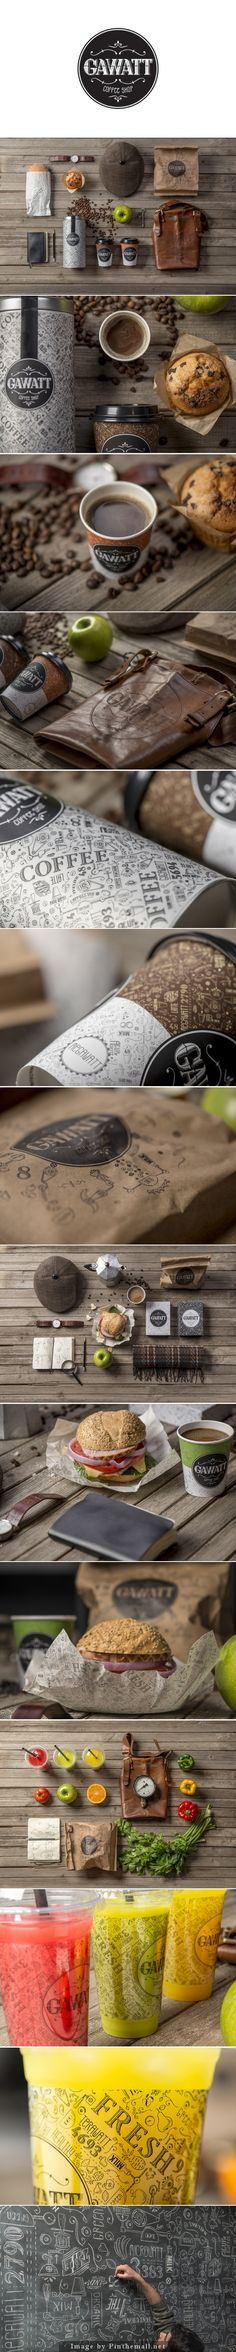 Gawatt Take-Out Coffee created by Stepan Azaryan, Karen Gevorgyan and Armenak Grigoryan #identity #packaging #branding PD